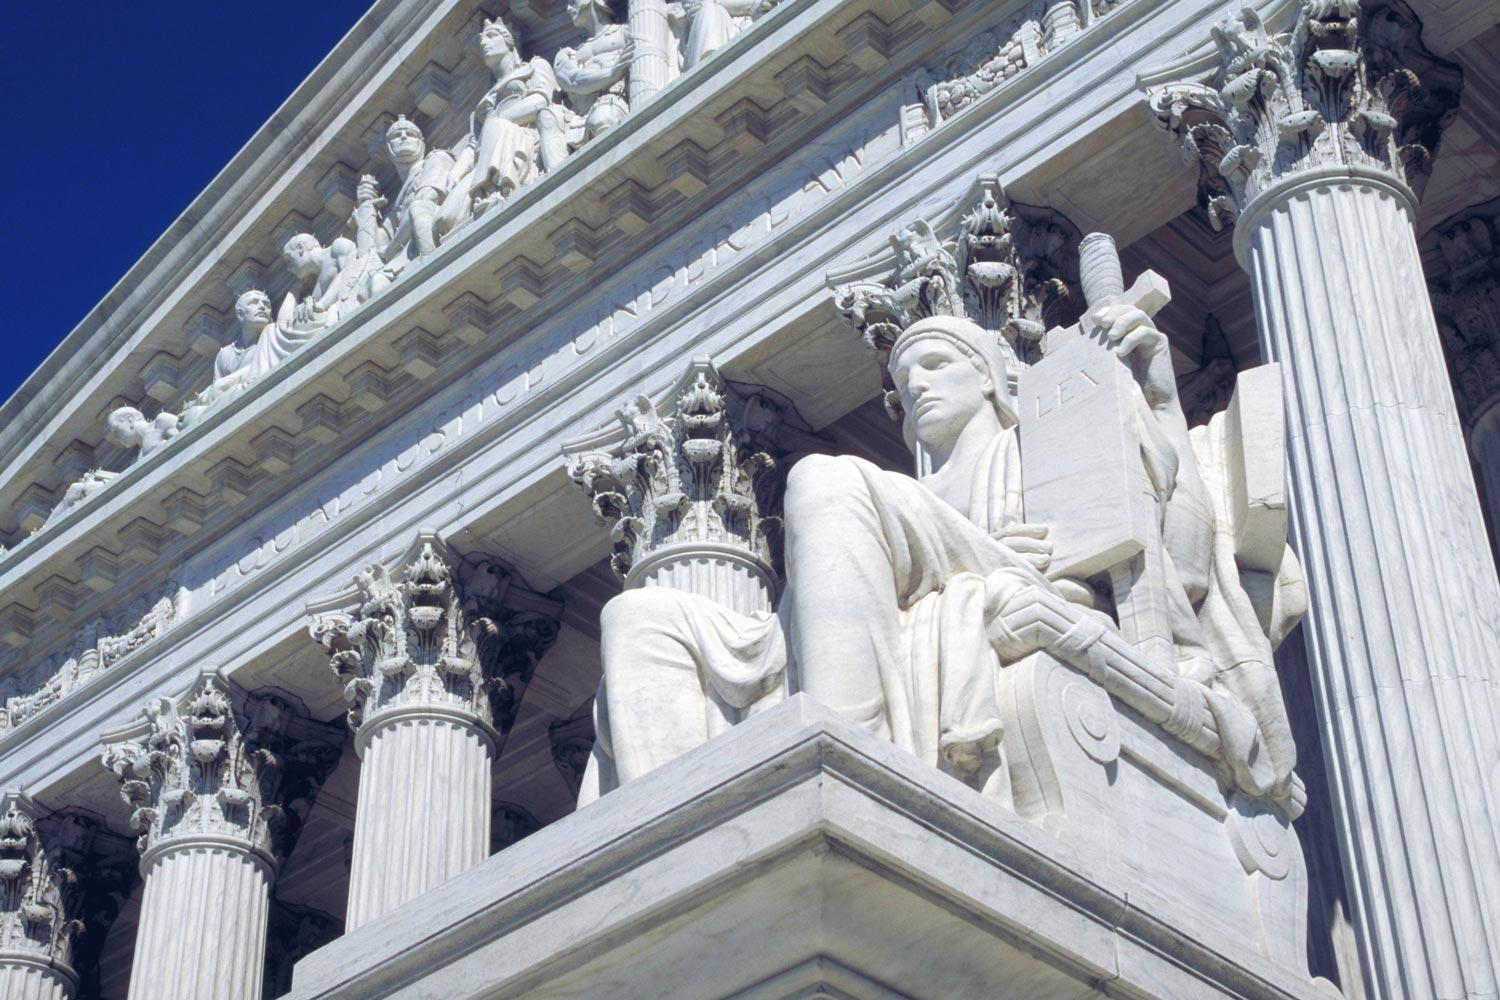 The next Supreme Court term, which opens Oct. 2, should be an active one, addressing issues left unresolved while a vacancy on the court was being filled.